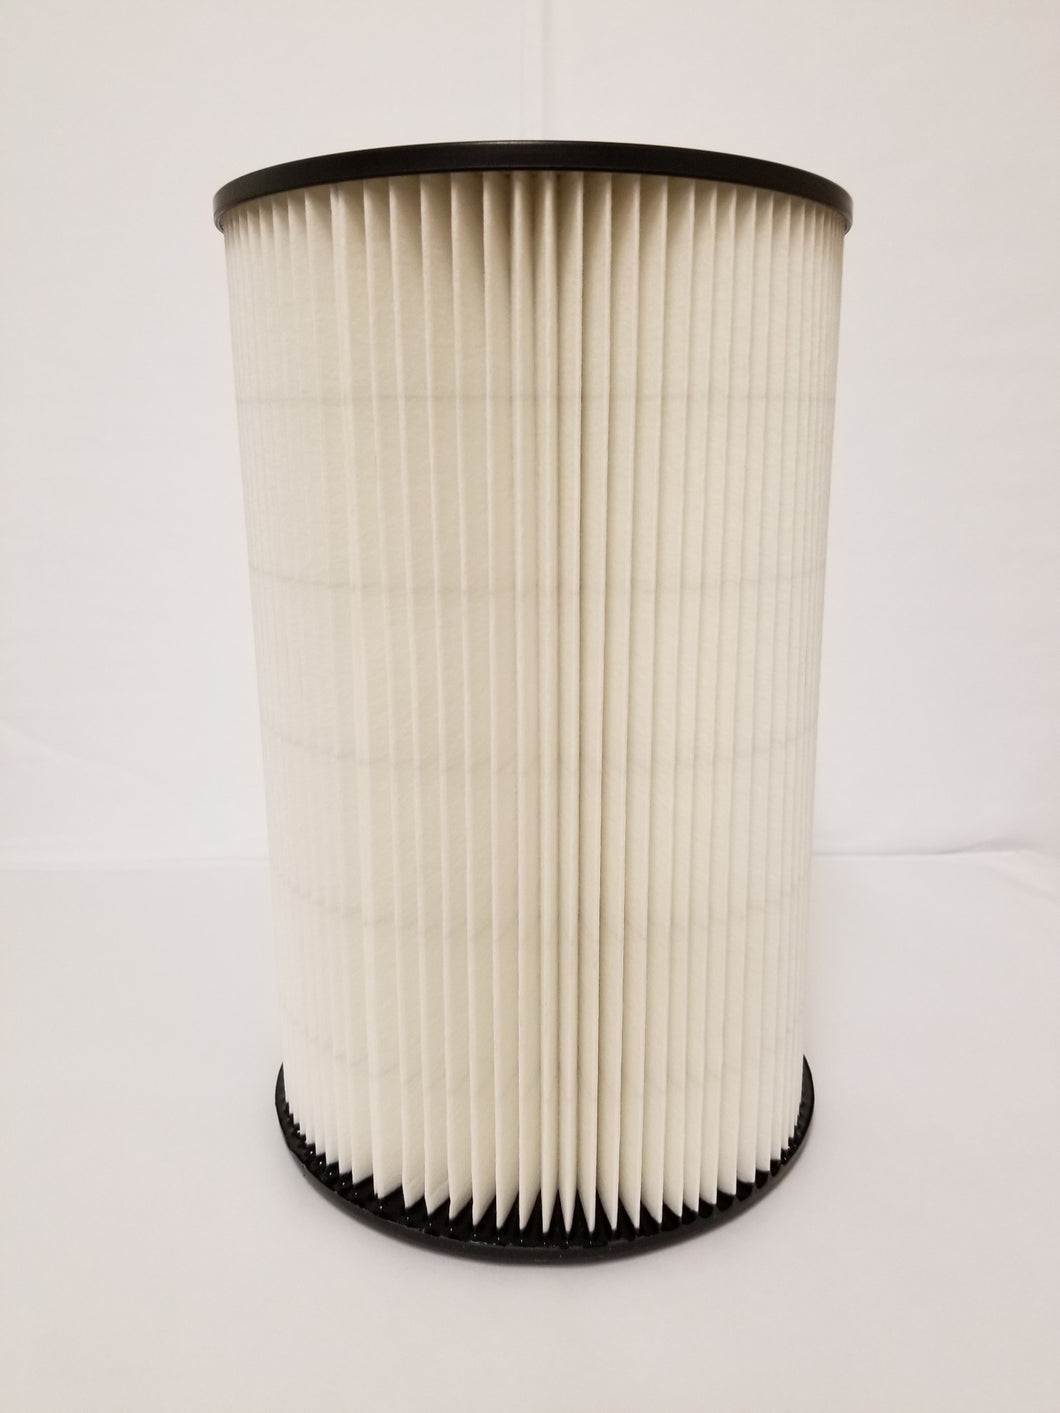 10 inch Central Vacuum Cartridge Filter